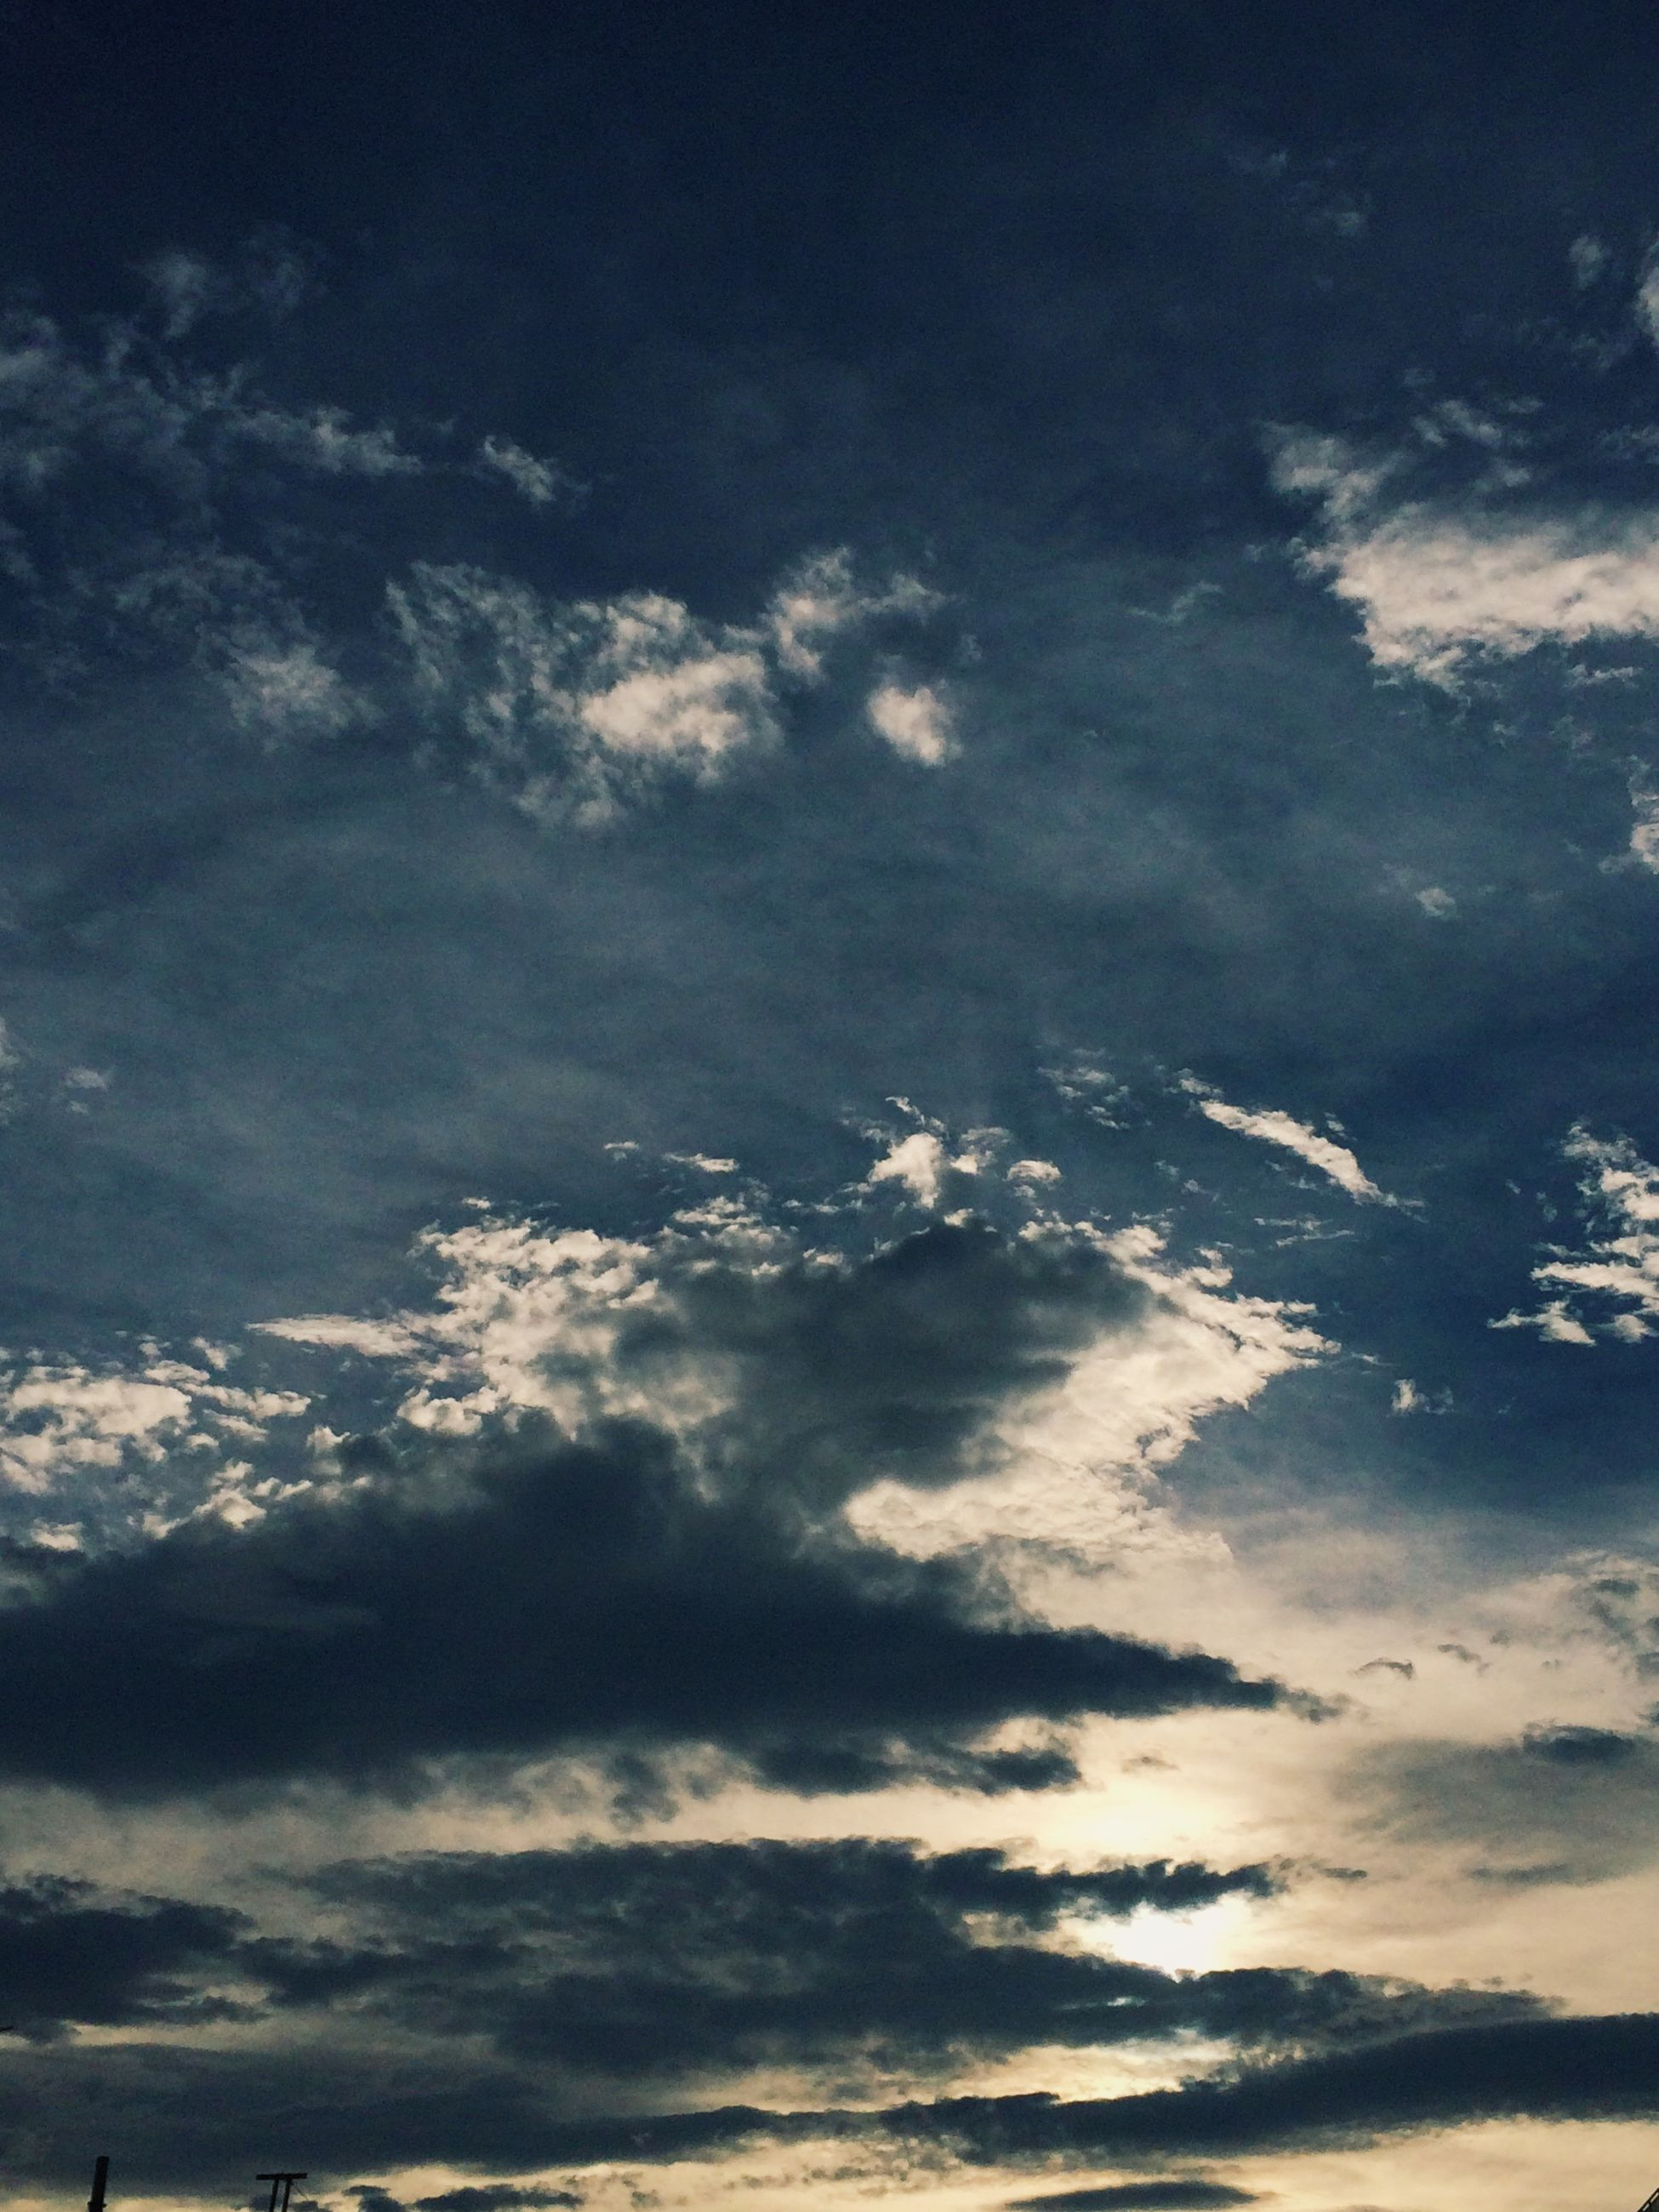 sky, scenics, beauty in nature, tranquility, tranquil scene, cloud - sky, nature, cloudscape, sky only, cloudy, idyllic, low angle view, blue, cloud, aerial view, backgrounds, weather, majestic, outdoors, no people